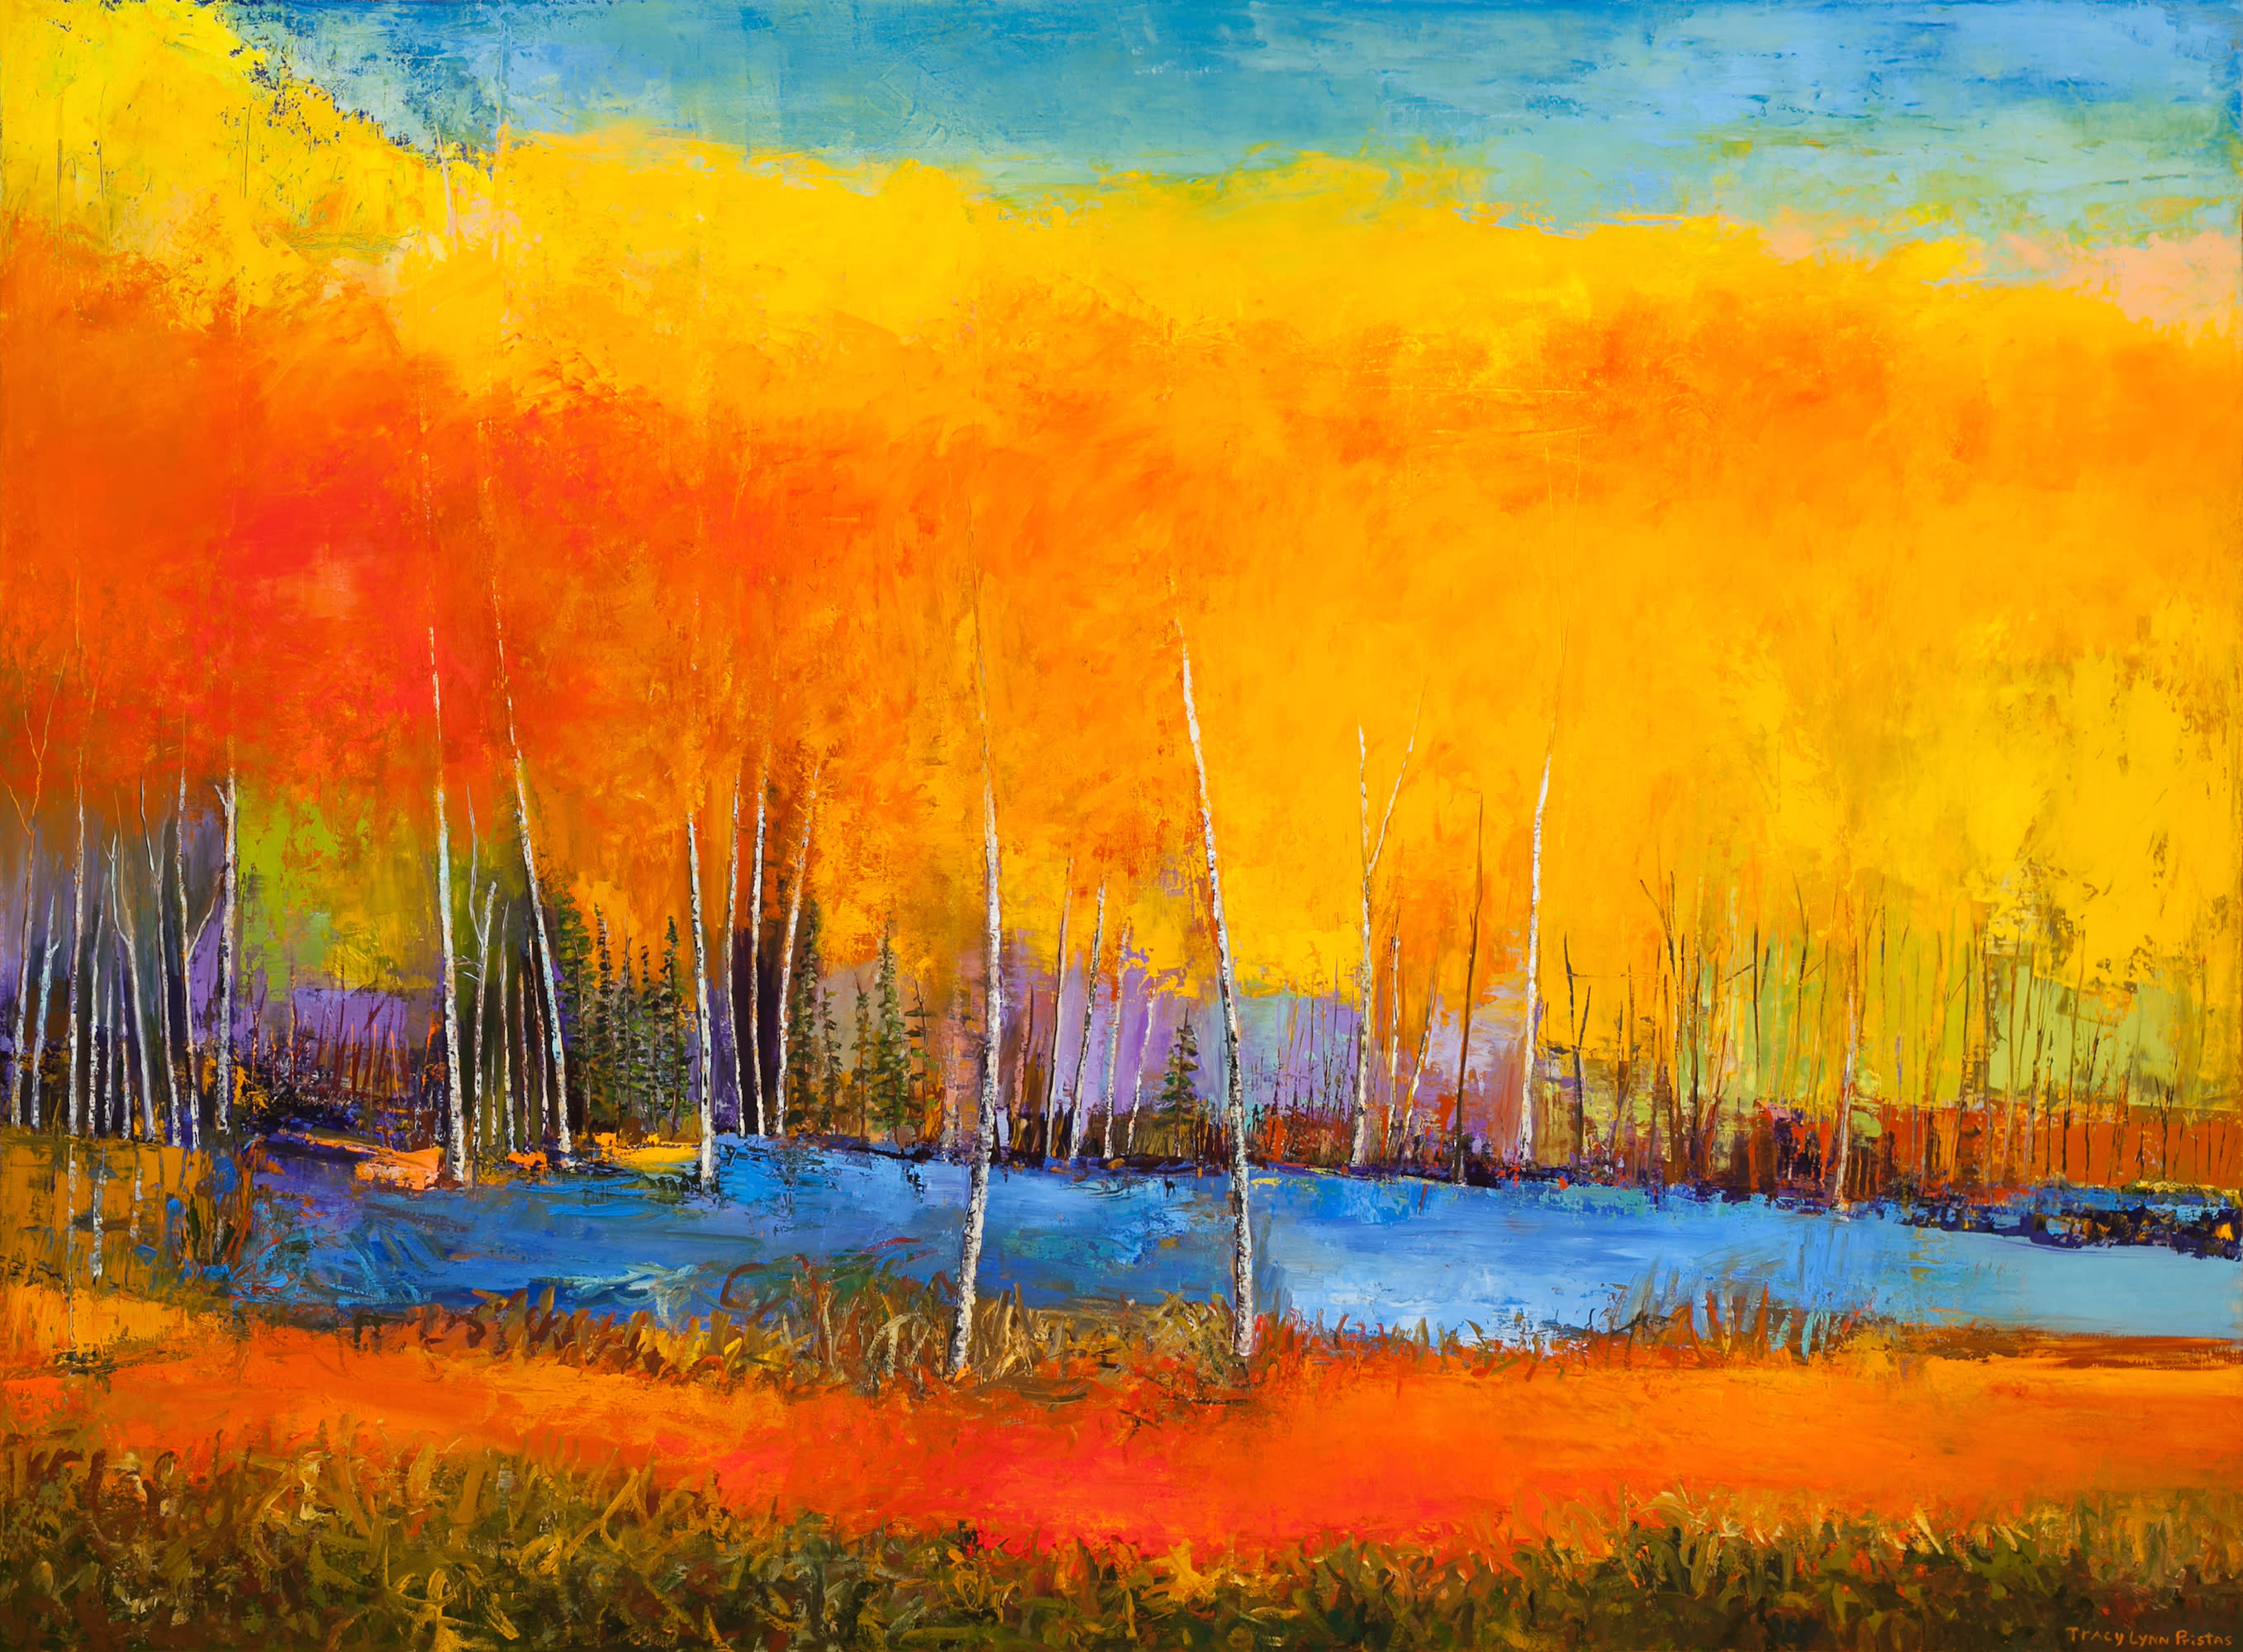 Abstract landscape paintings contemporary art gallery sold ss8uud